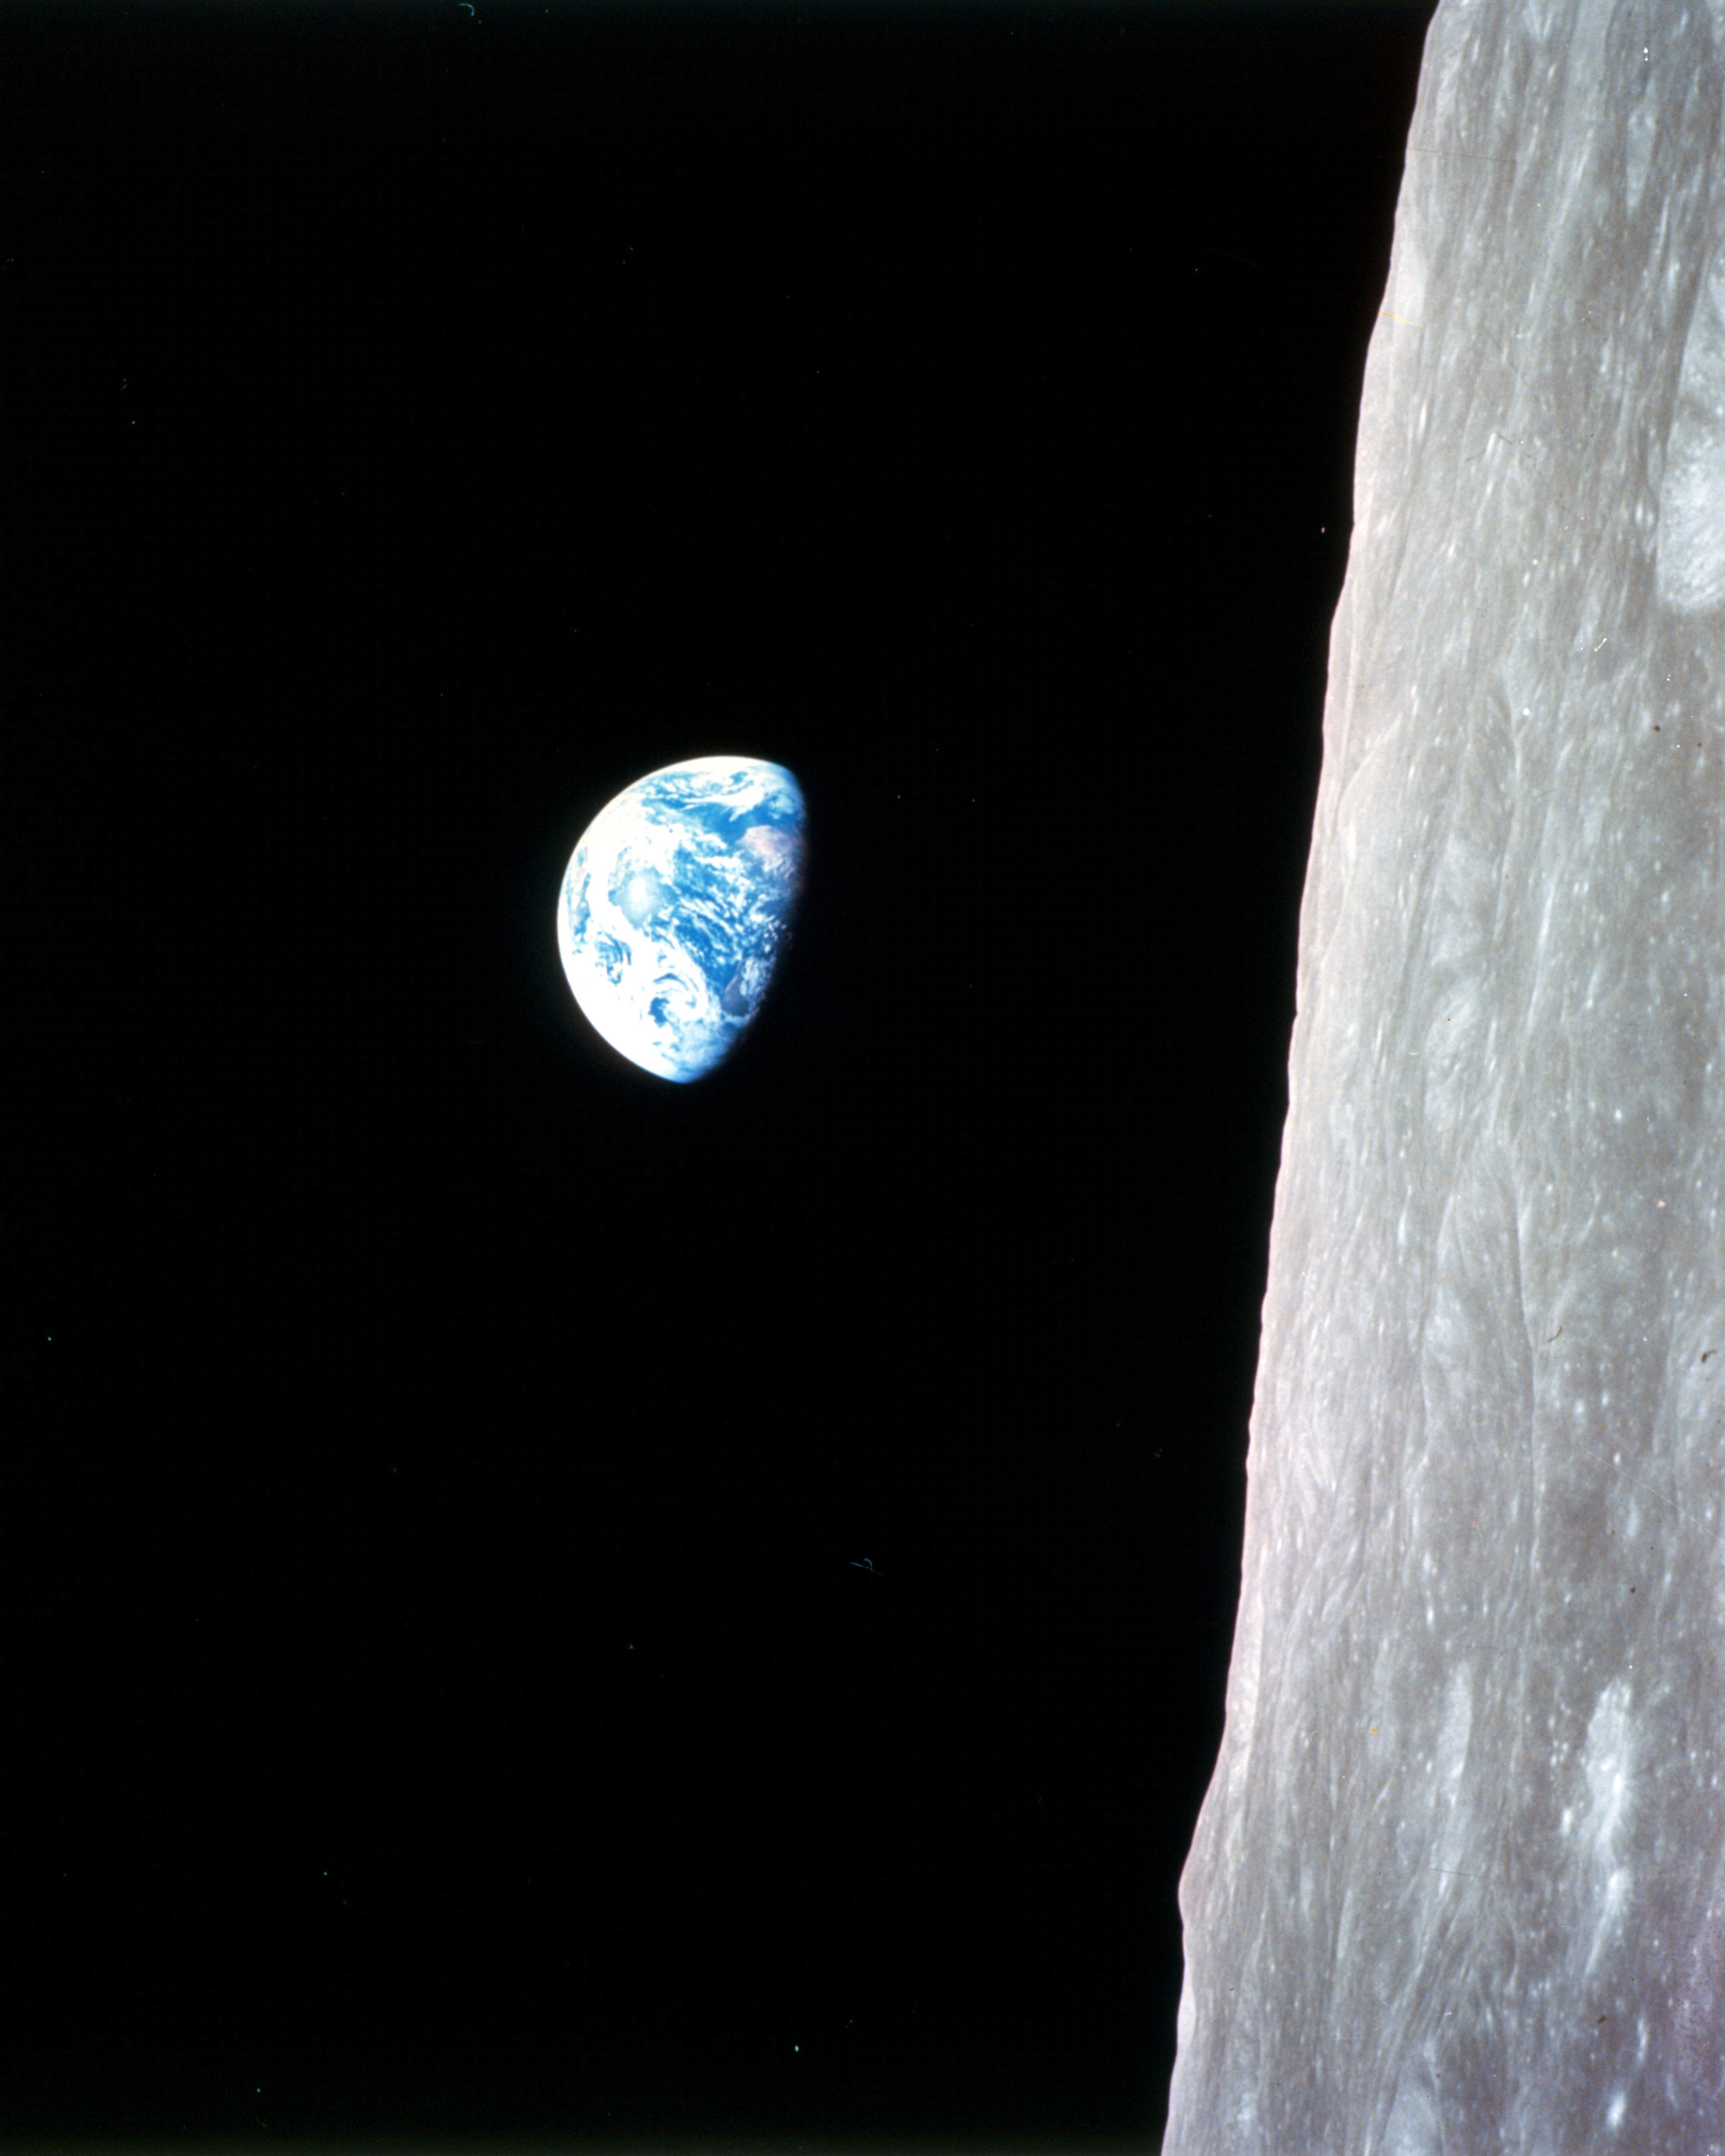 This iconic photo of the Earth rising above the Moon was taken by  William Anders  on the Apollo 8 mission, 50 years ago, on December 24, 1968.  Credit:  NASA . Like others from NASA, the photo is in the public domain without copyright protections.